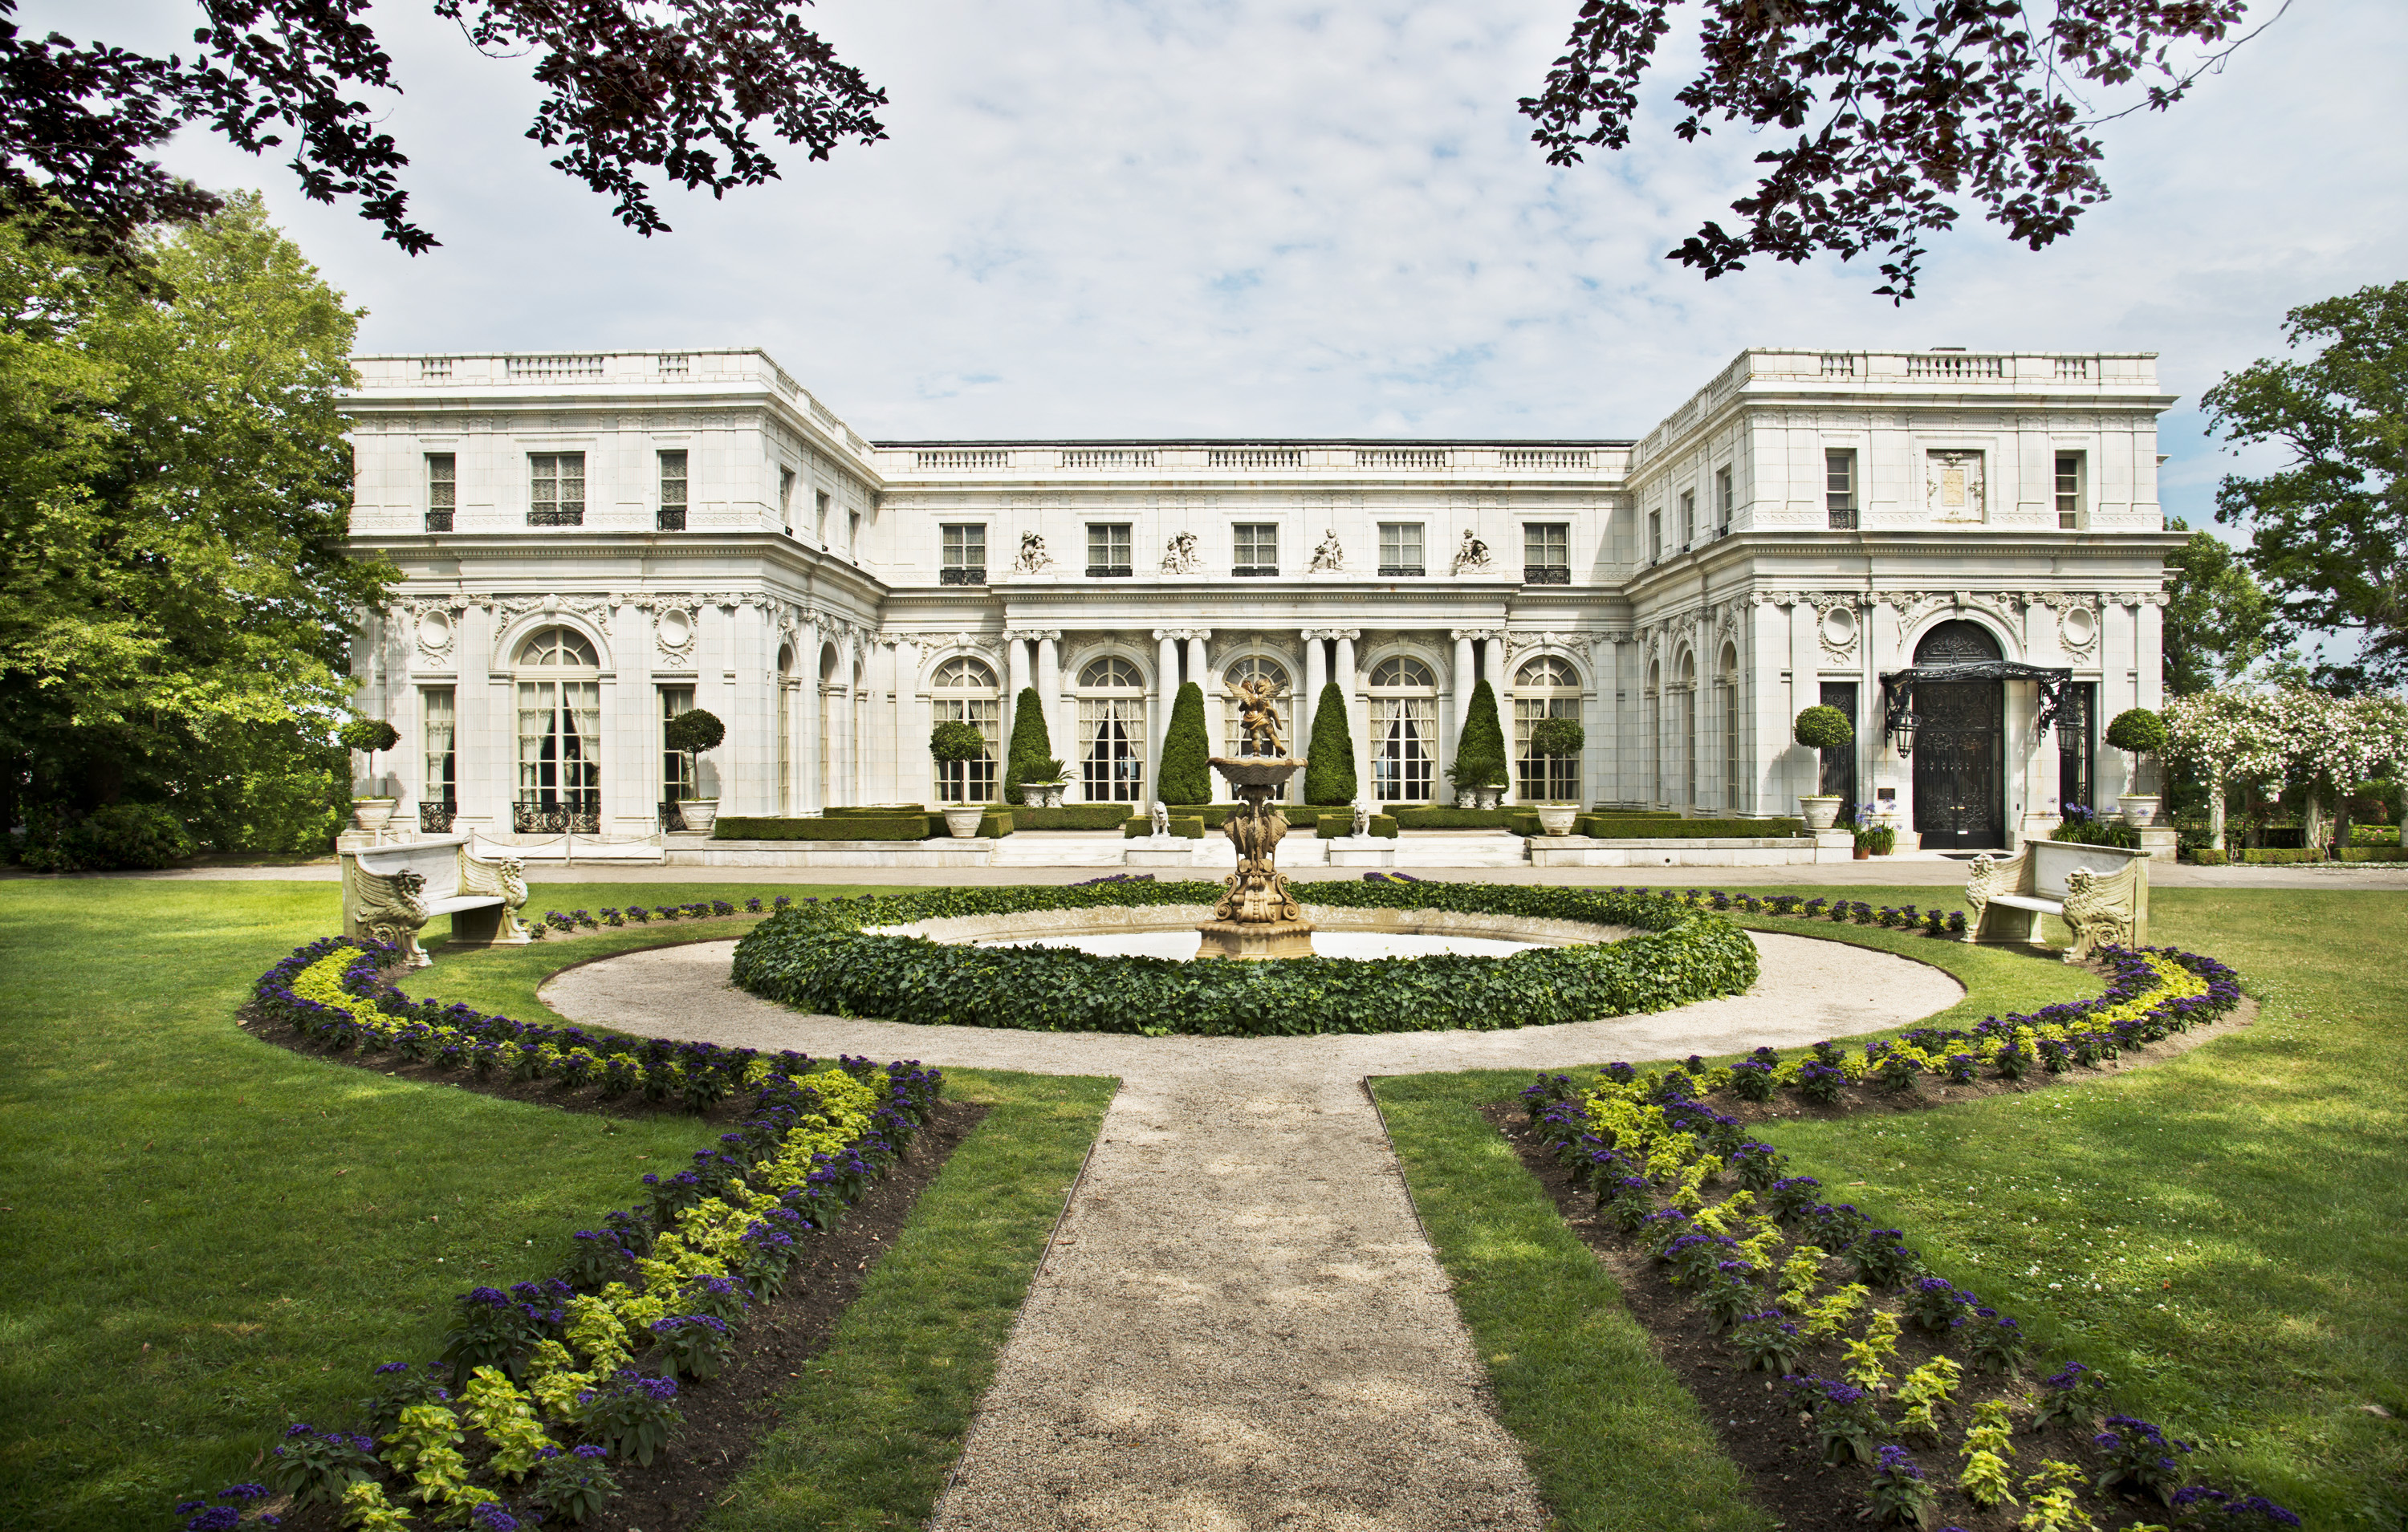 Curious Objects The House That Vanderbilt Gilded Age Mansions Of Newport Ri Magazine Antiques